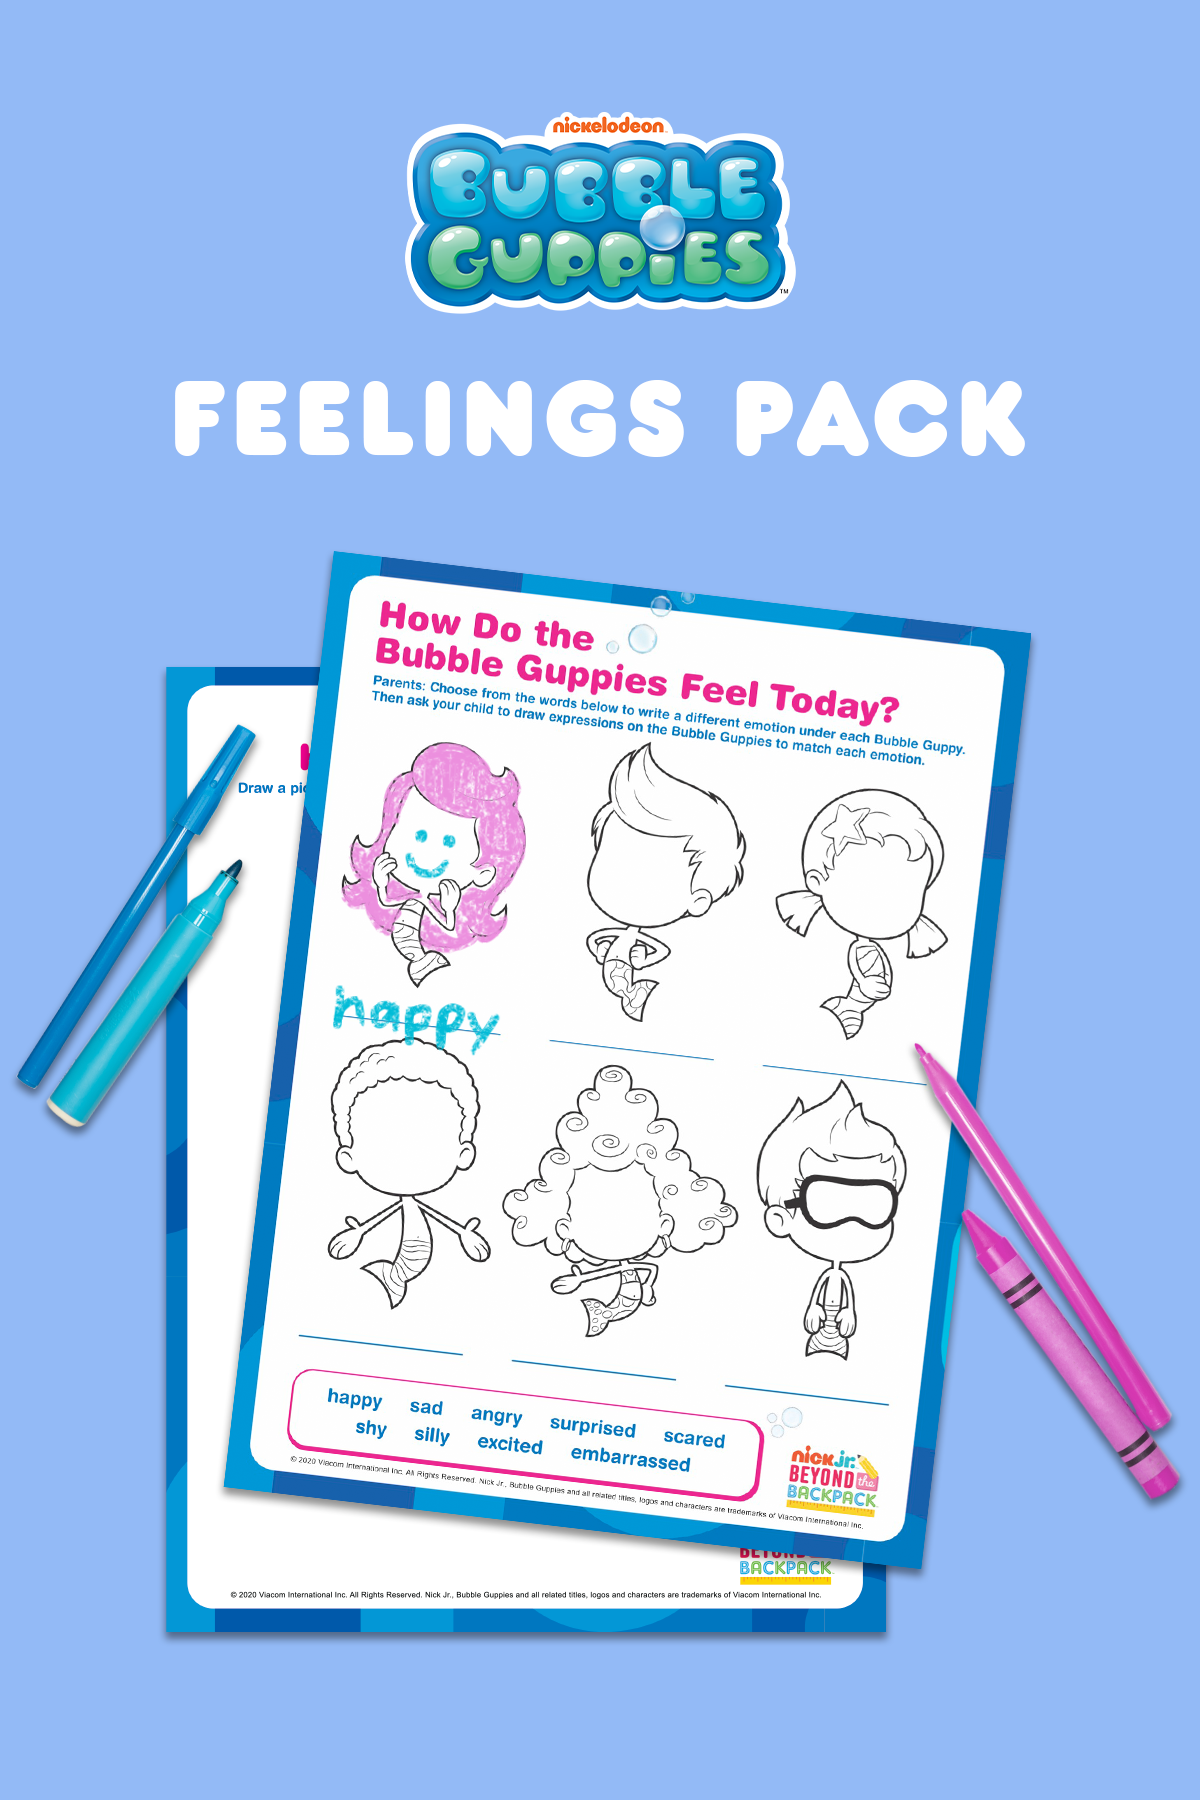 All The Feelings Bubble Guppies Activity Pack Bubble Guppies Feelings Activities Activity Sheets For Kids